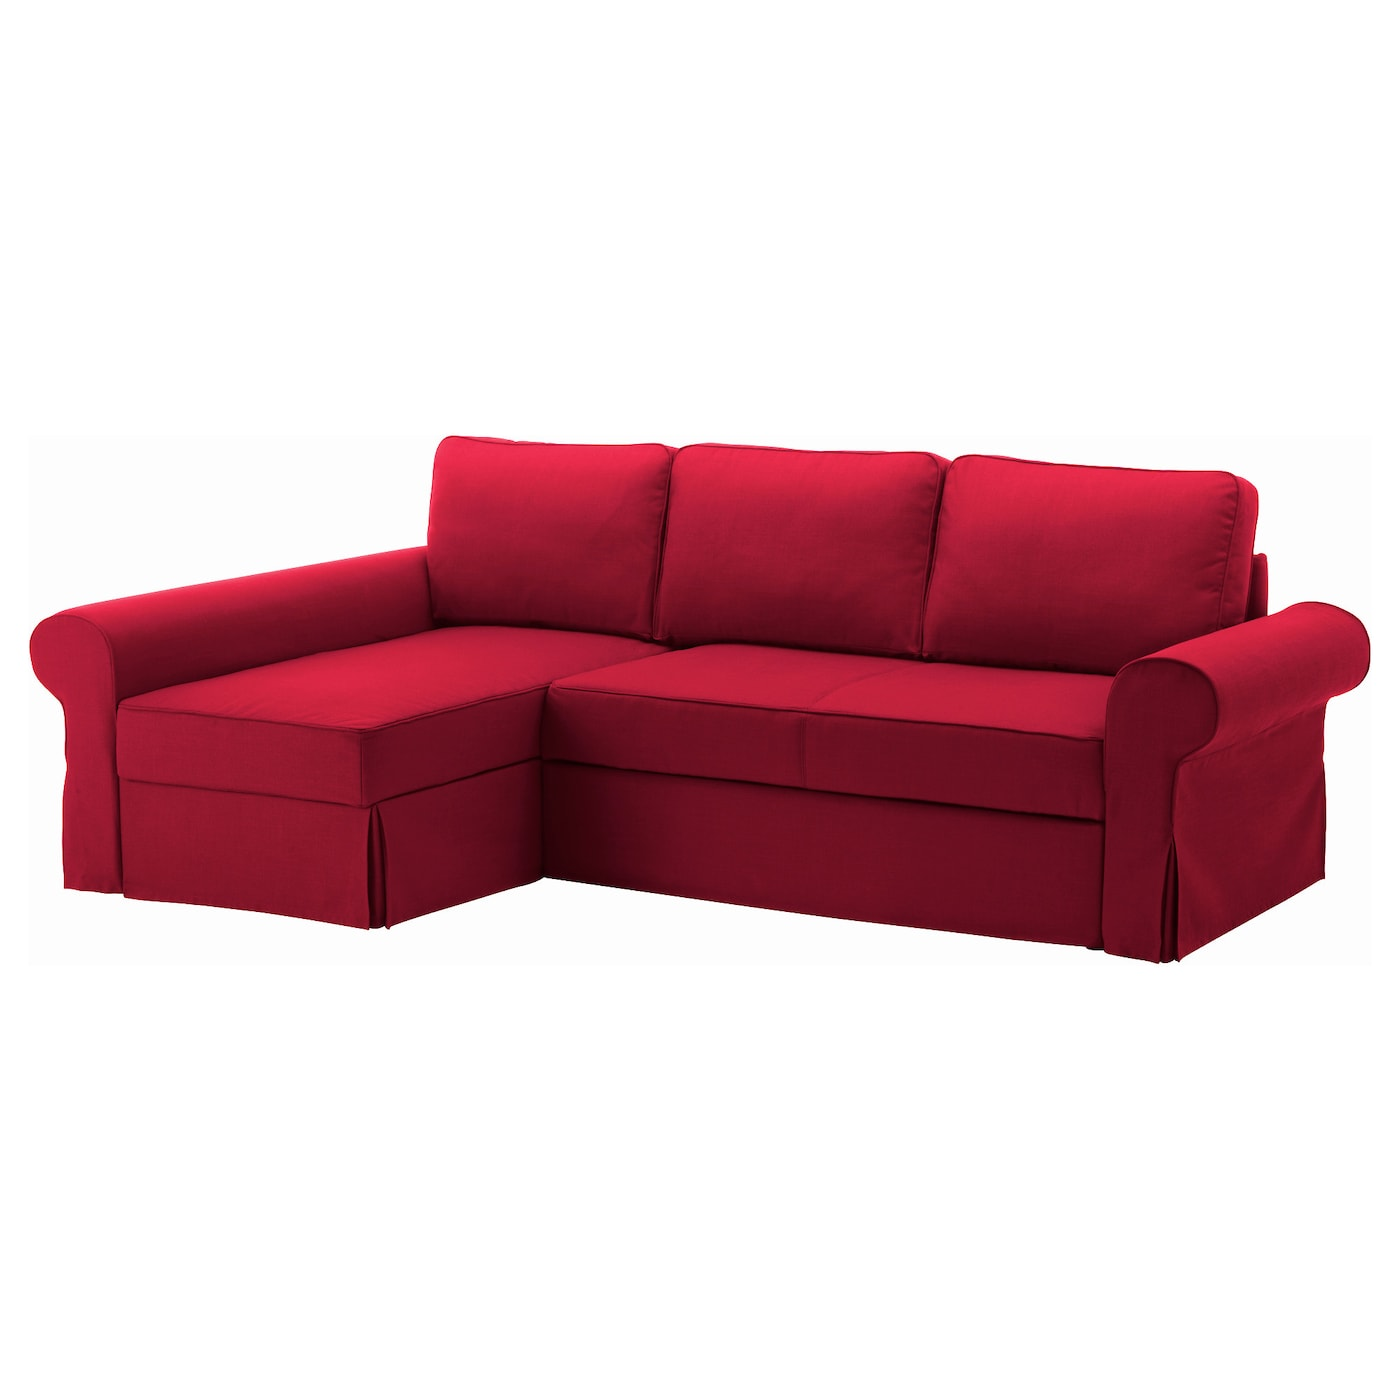 Backabro sofa bed with chaise longue nordvalla red ikea for Chaise long sofa